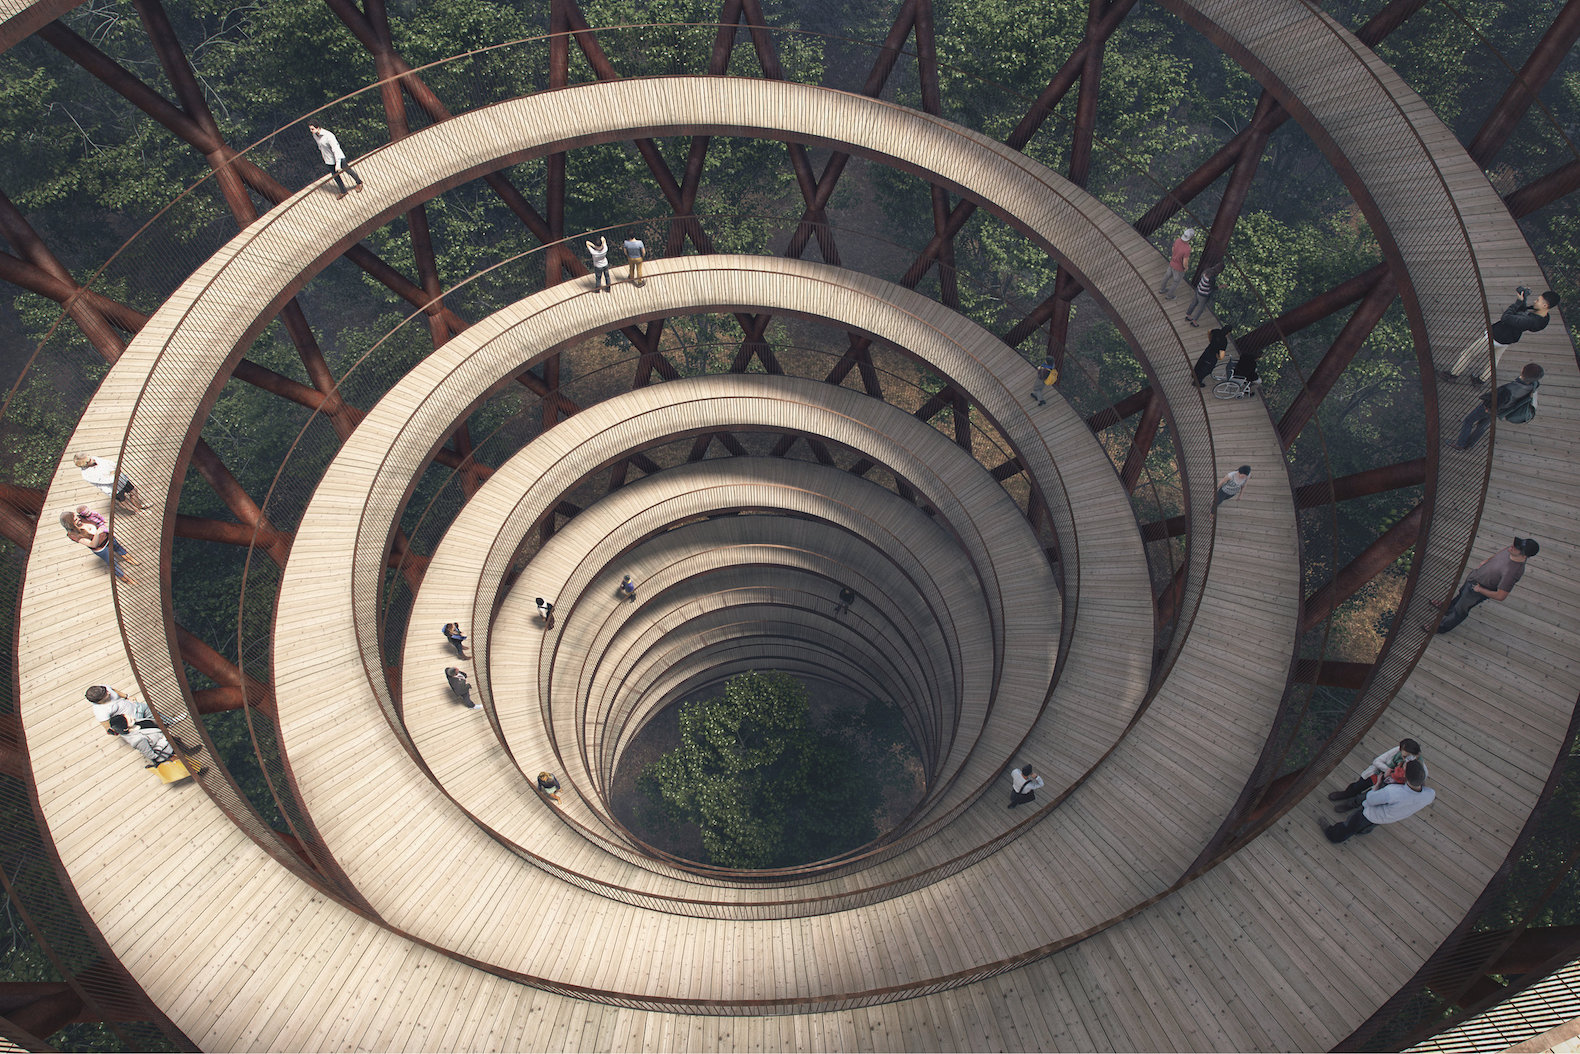 Spiraling treetop walkway gives visitors a bird's eye view of a Danish forest